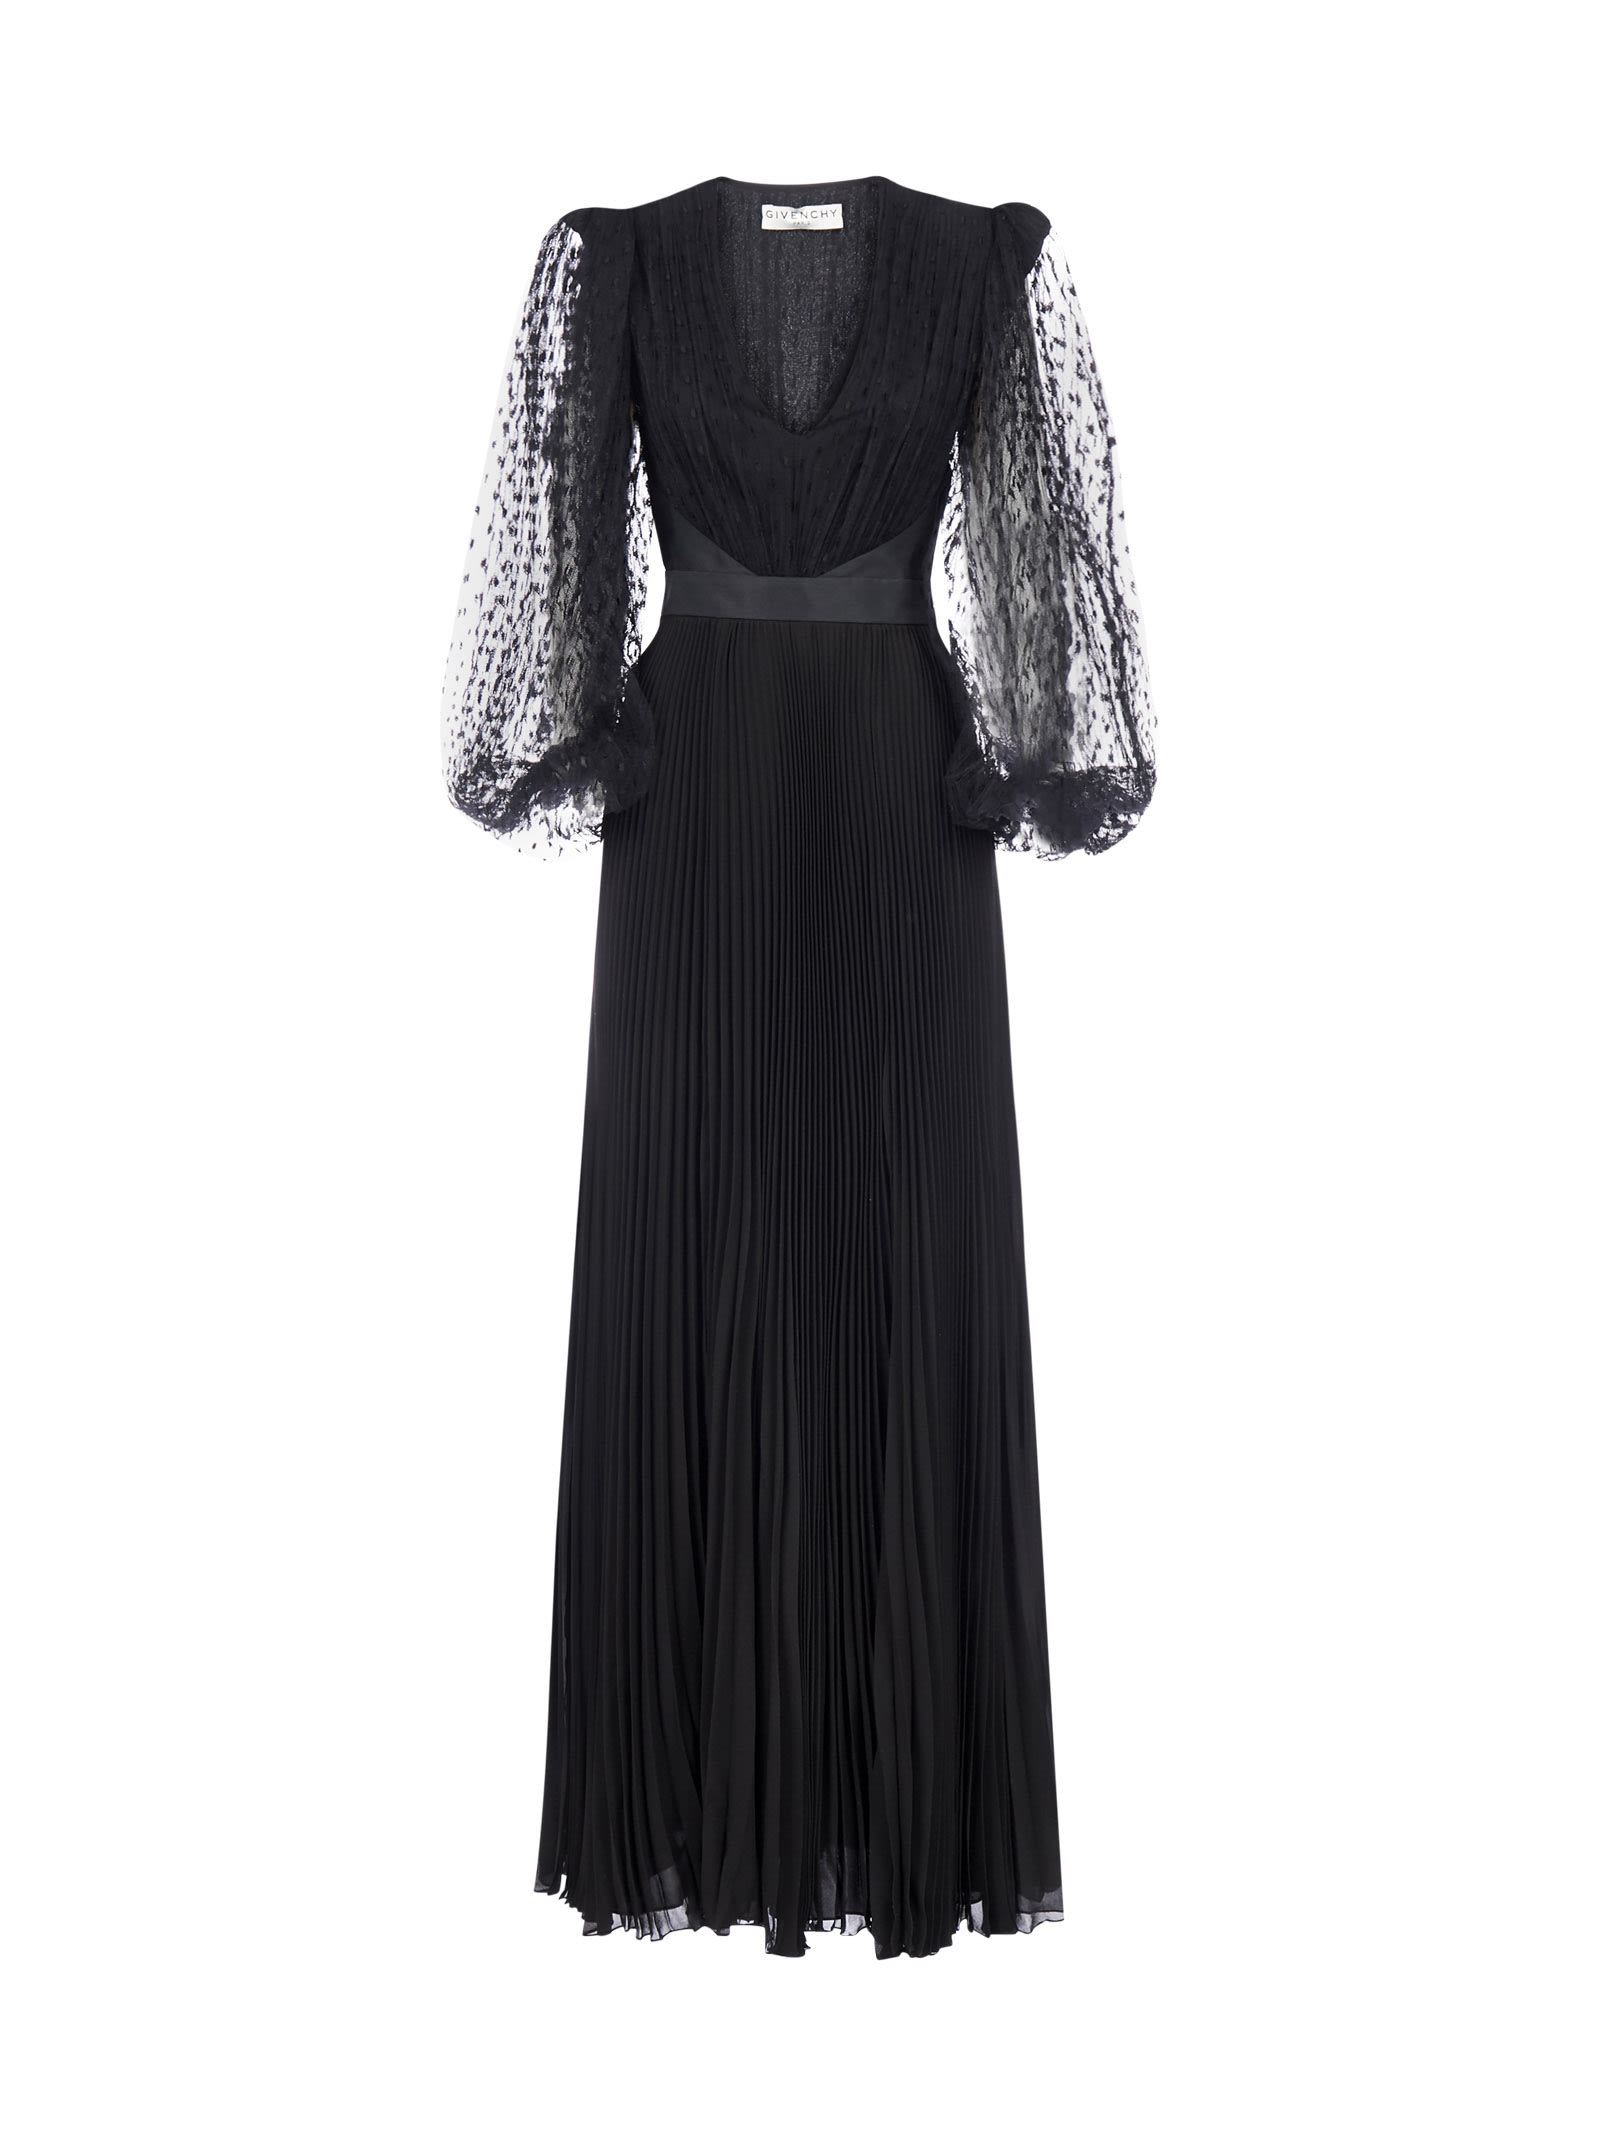 Givenchy Pleated Silk And Lace Evening Dress